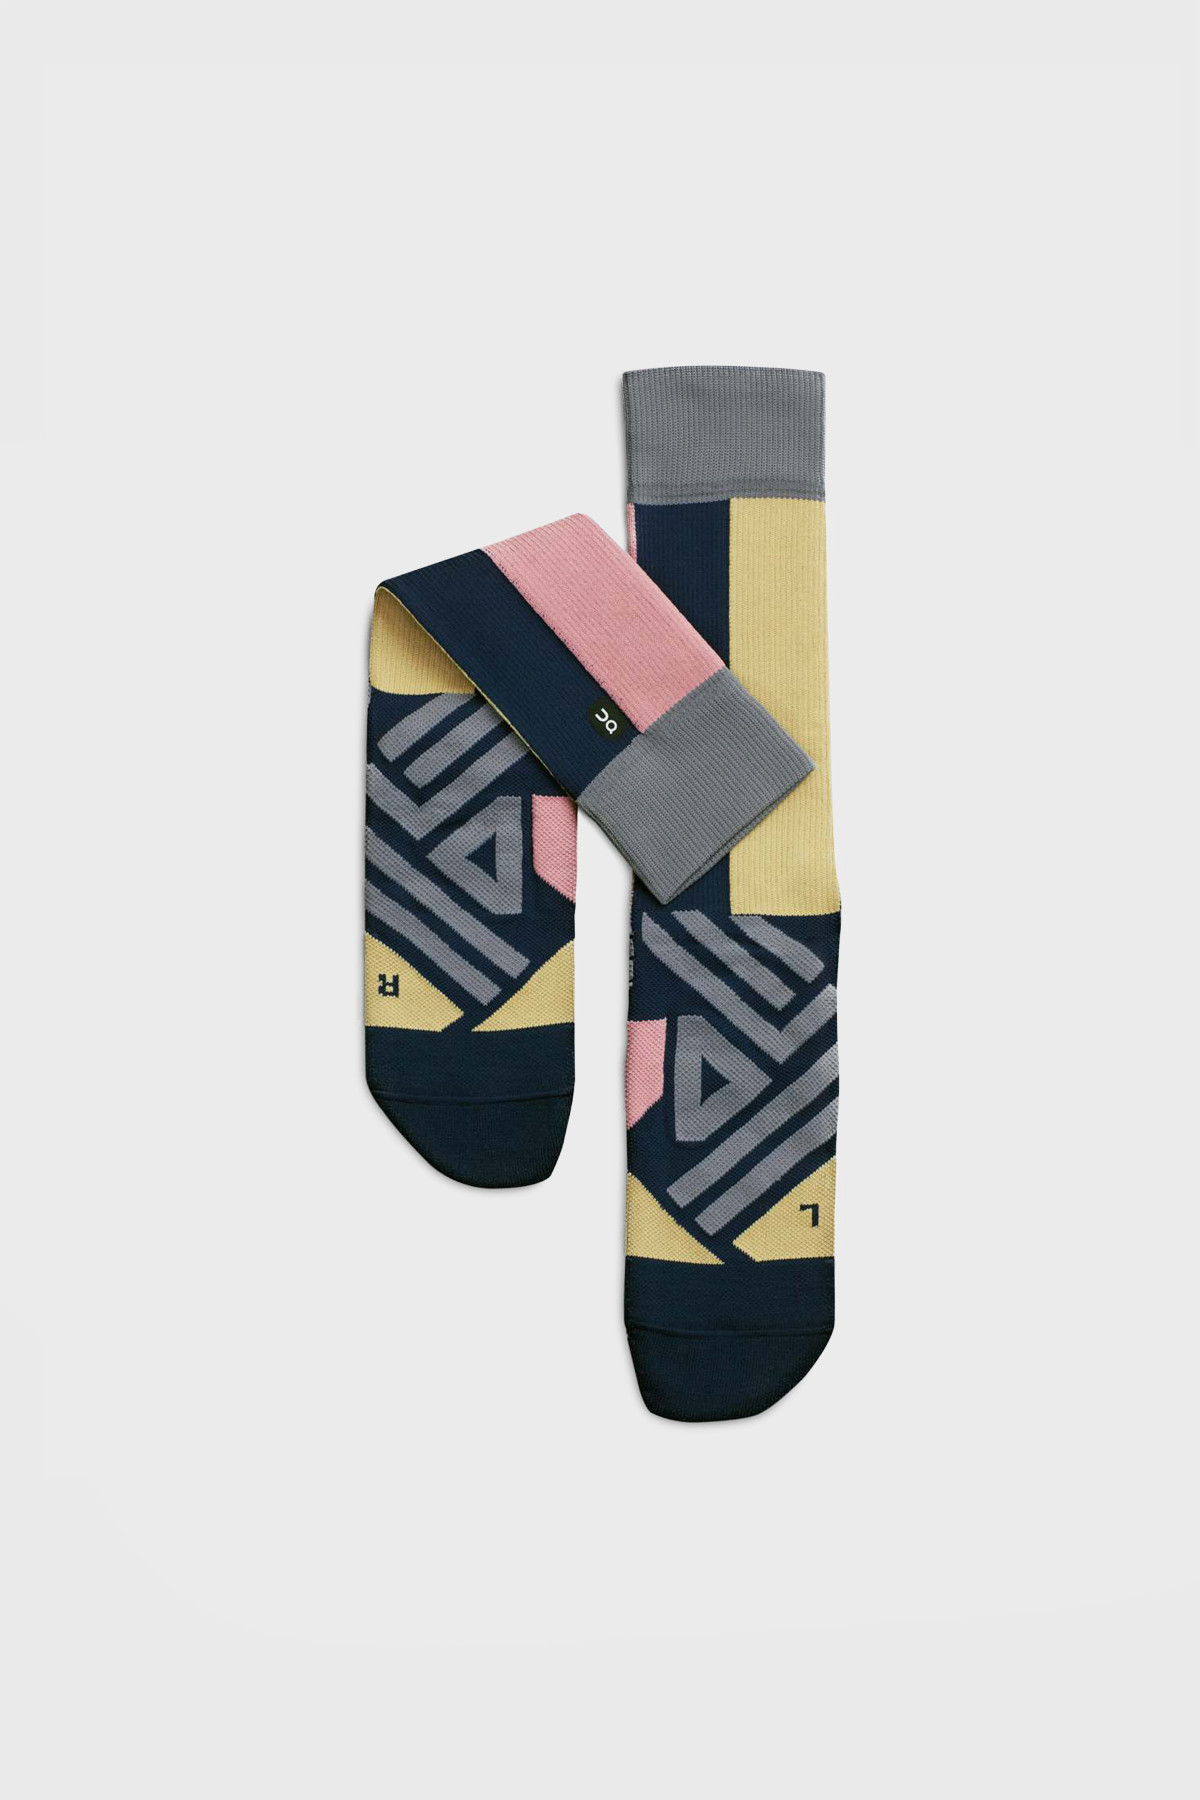 On - High Sock - Navy Dustrose